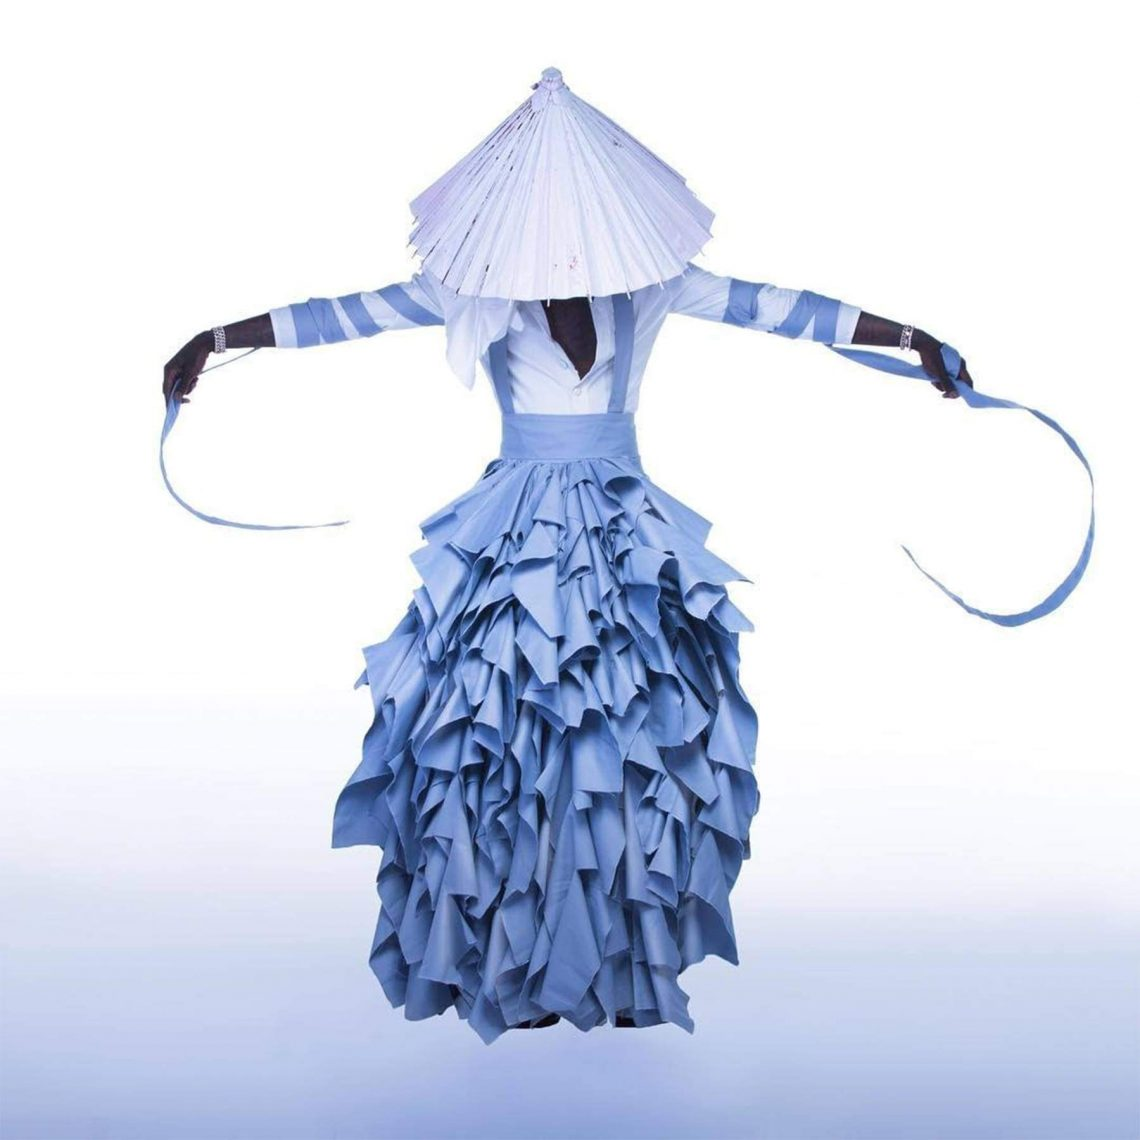 Young Thug, a dress by Alessandro Trincone for the cover of his 2016 album -No, My Name is Jeffery-